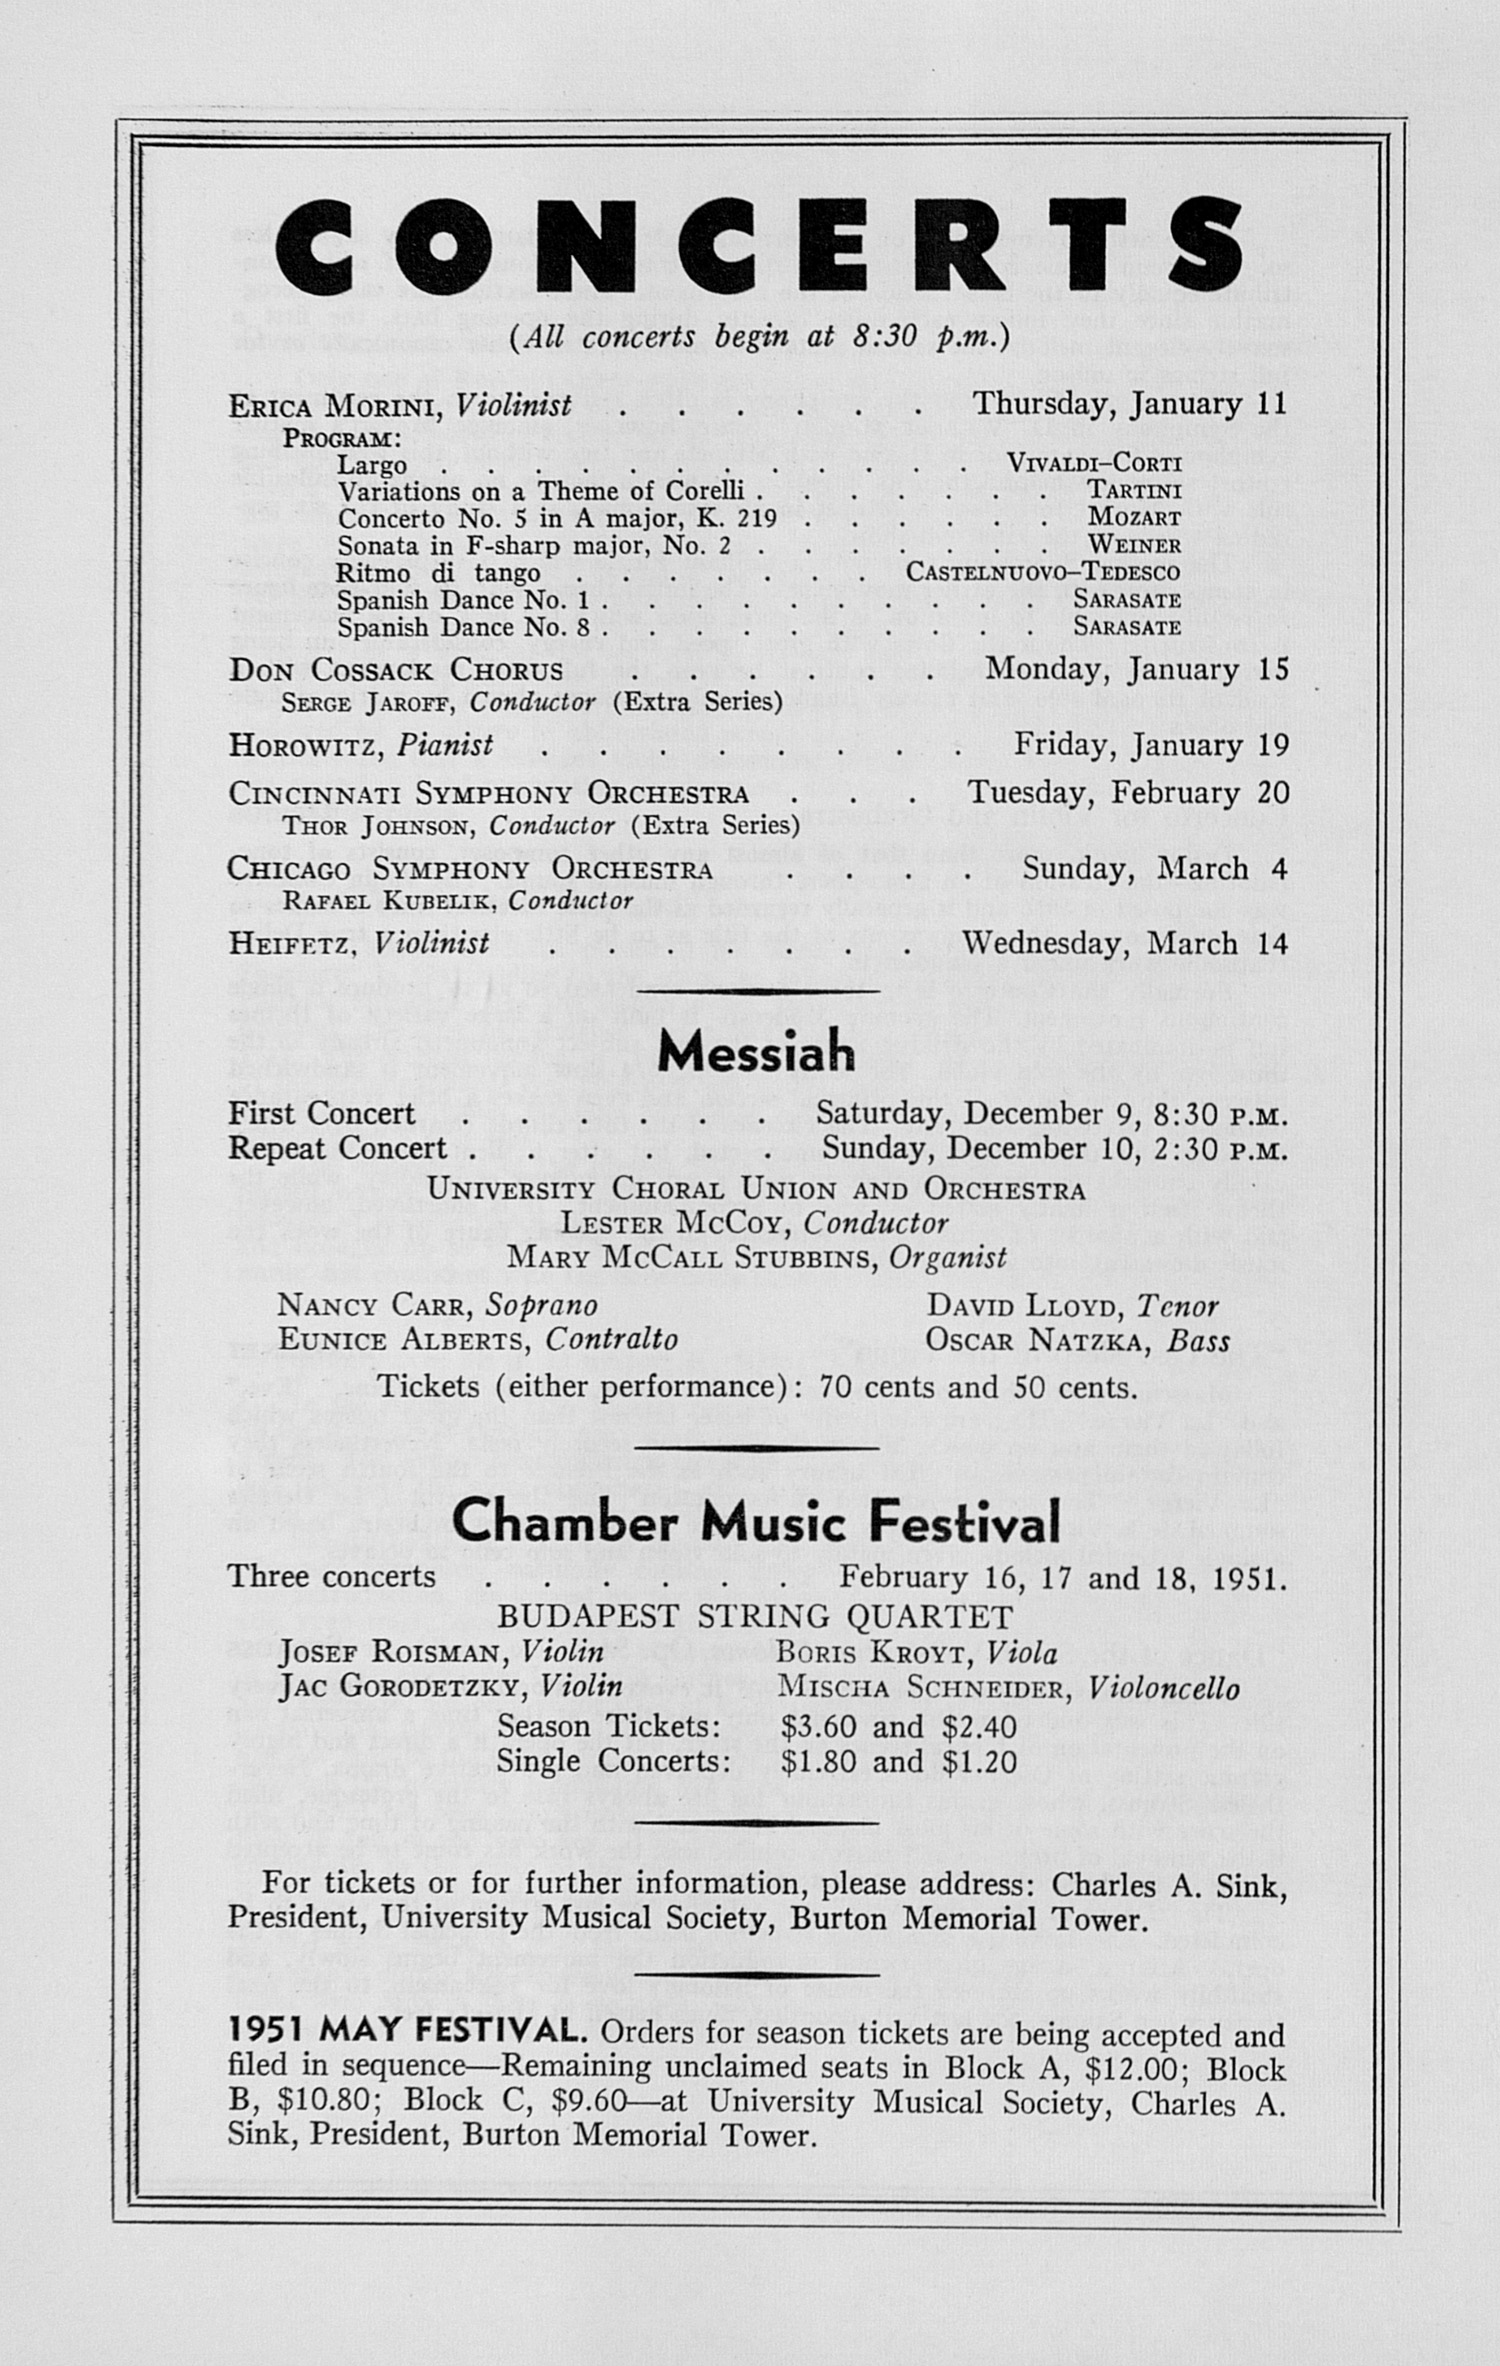 UMS Concert Program, December 3, 1950: Seventy-second Annual Choral Union Concert Series -- Royal Philharmonic Orchestra image